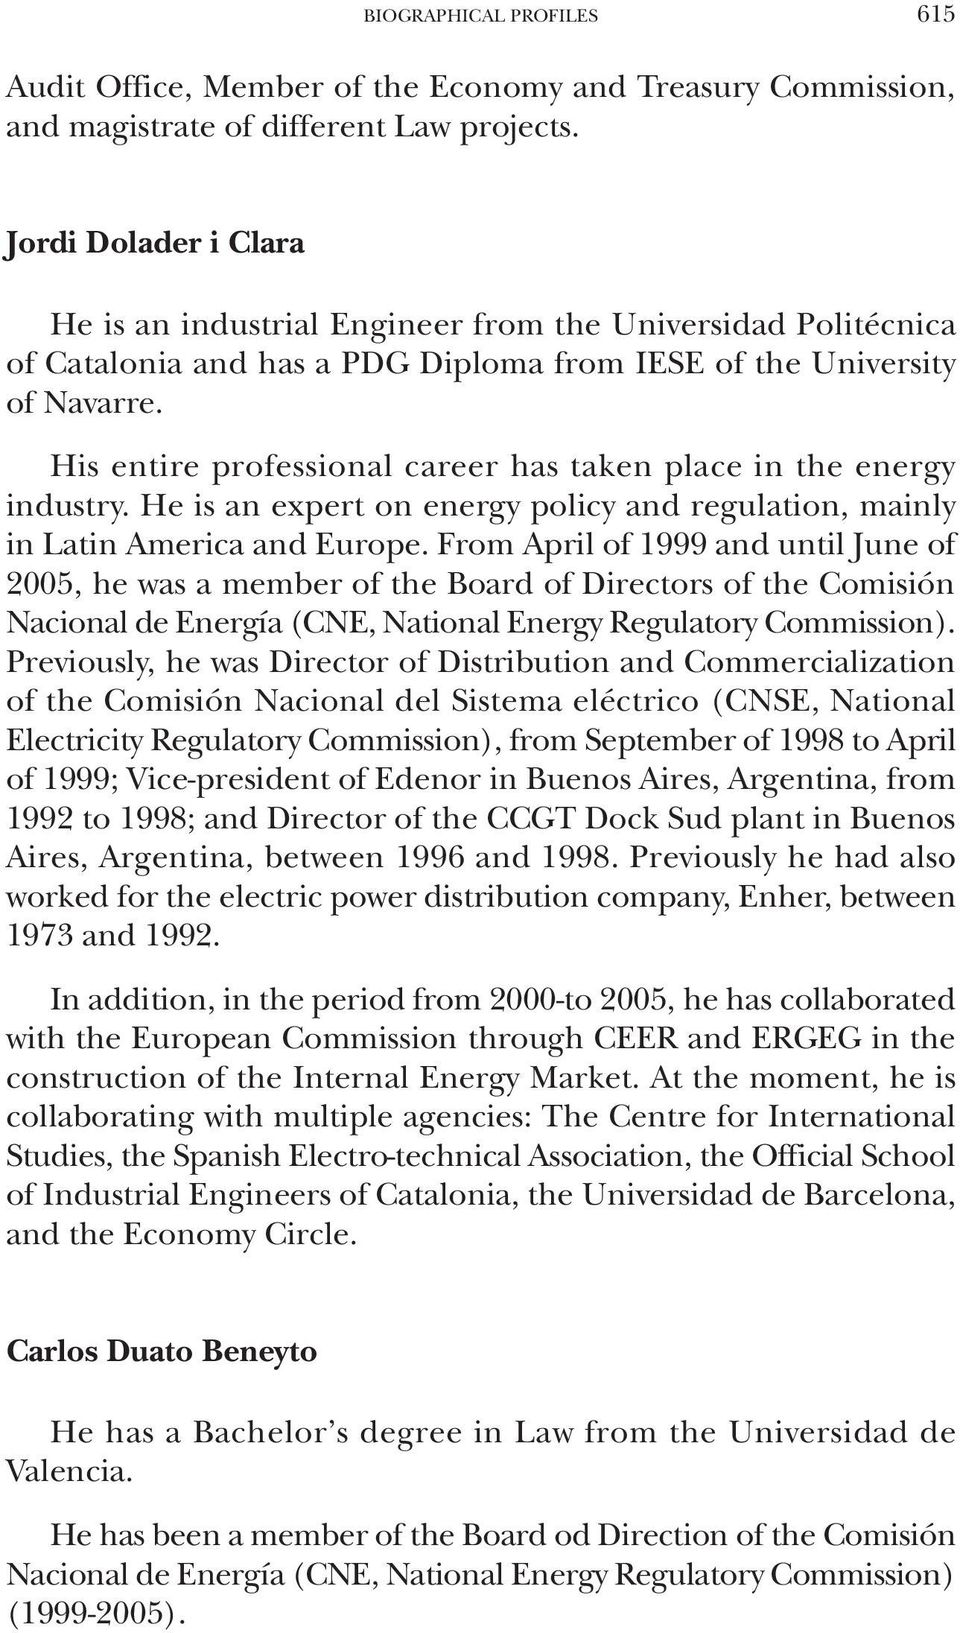 His entire professional career has taken place in the energy industry. He is an expert on energy policy and regulation, mainly in Latin America and Europe.